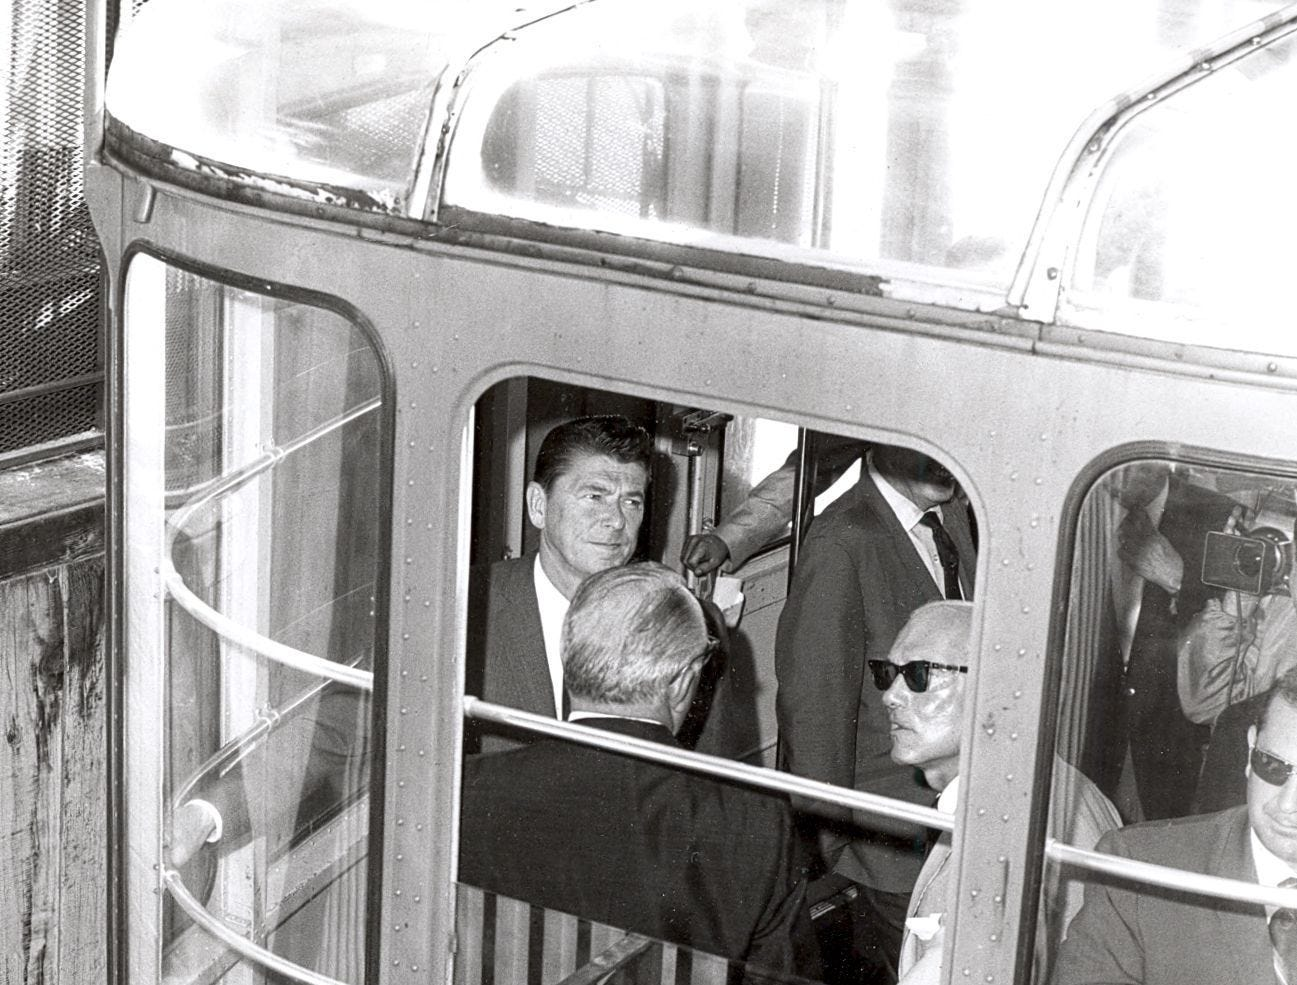 Then Governor Ronald Reagan takes a ride on the Palm Springs Aerial Tramway in this undated photo.